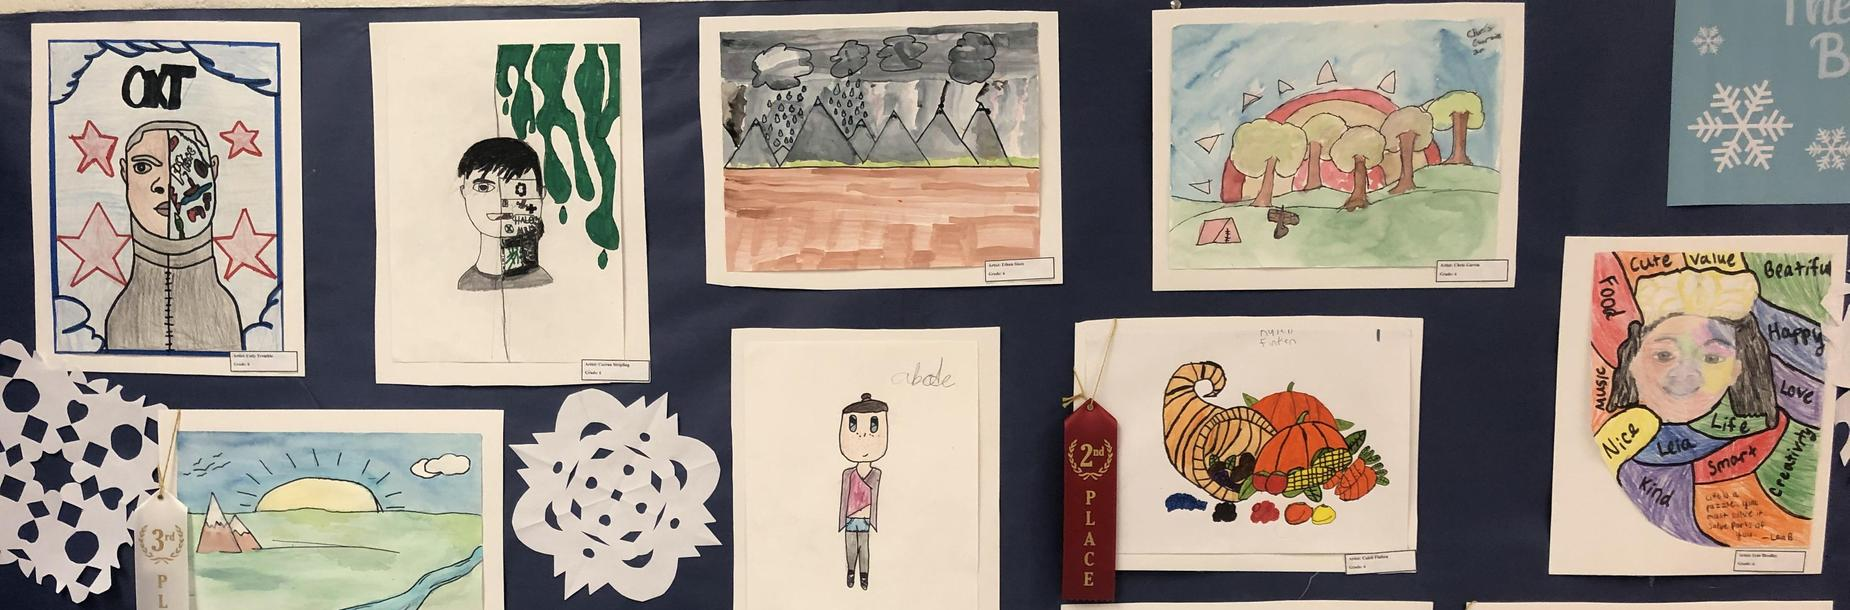 Art on Display during the Winter Fine Arts Program